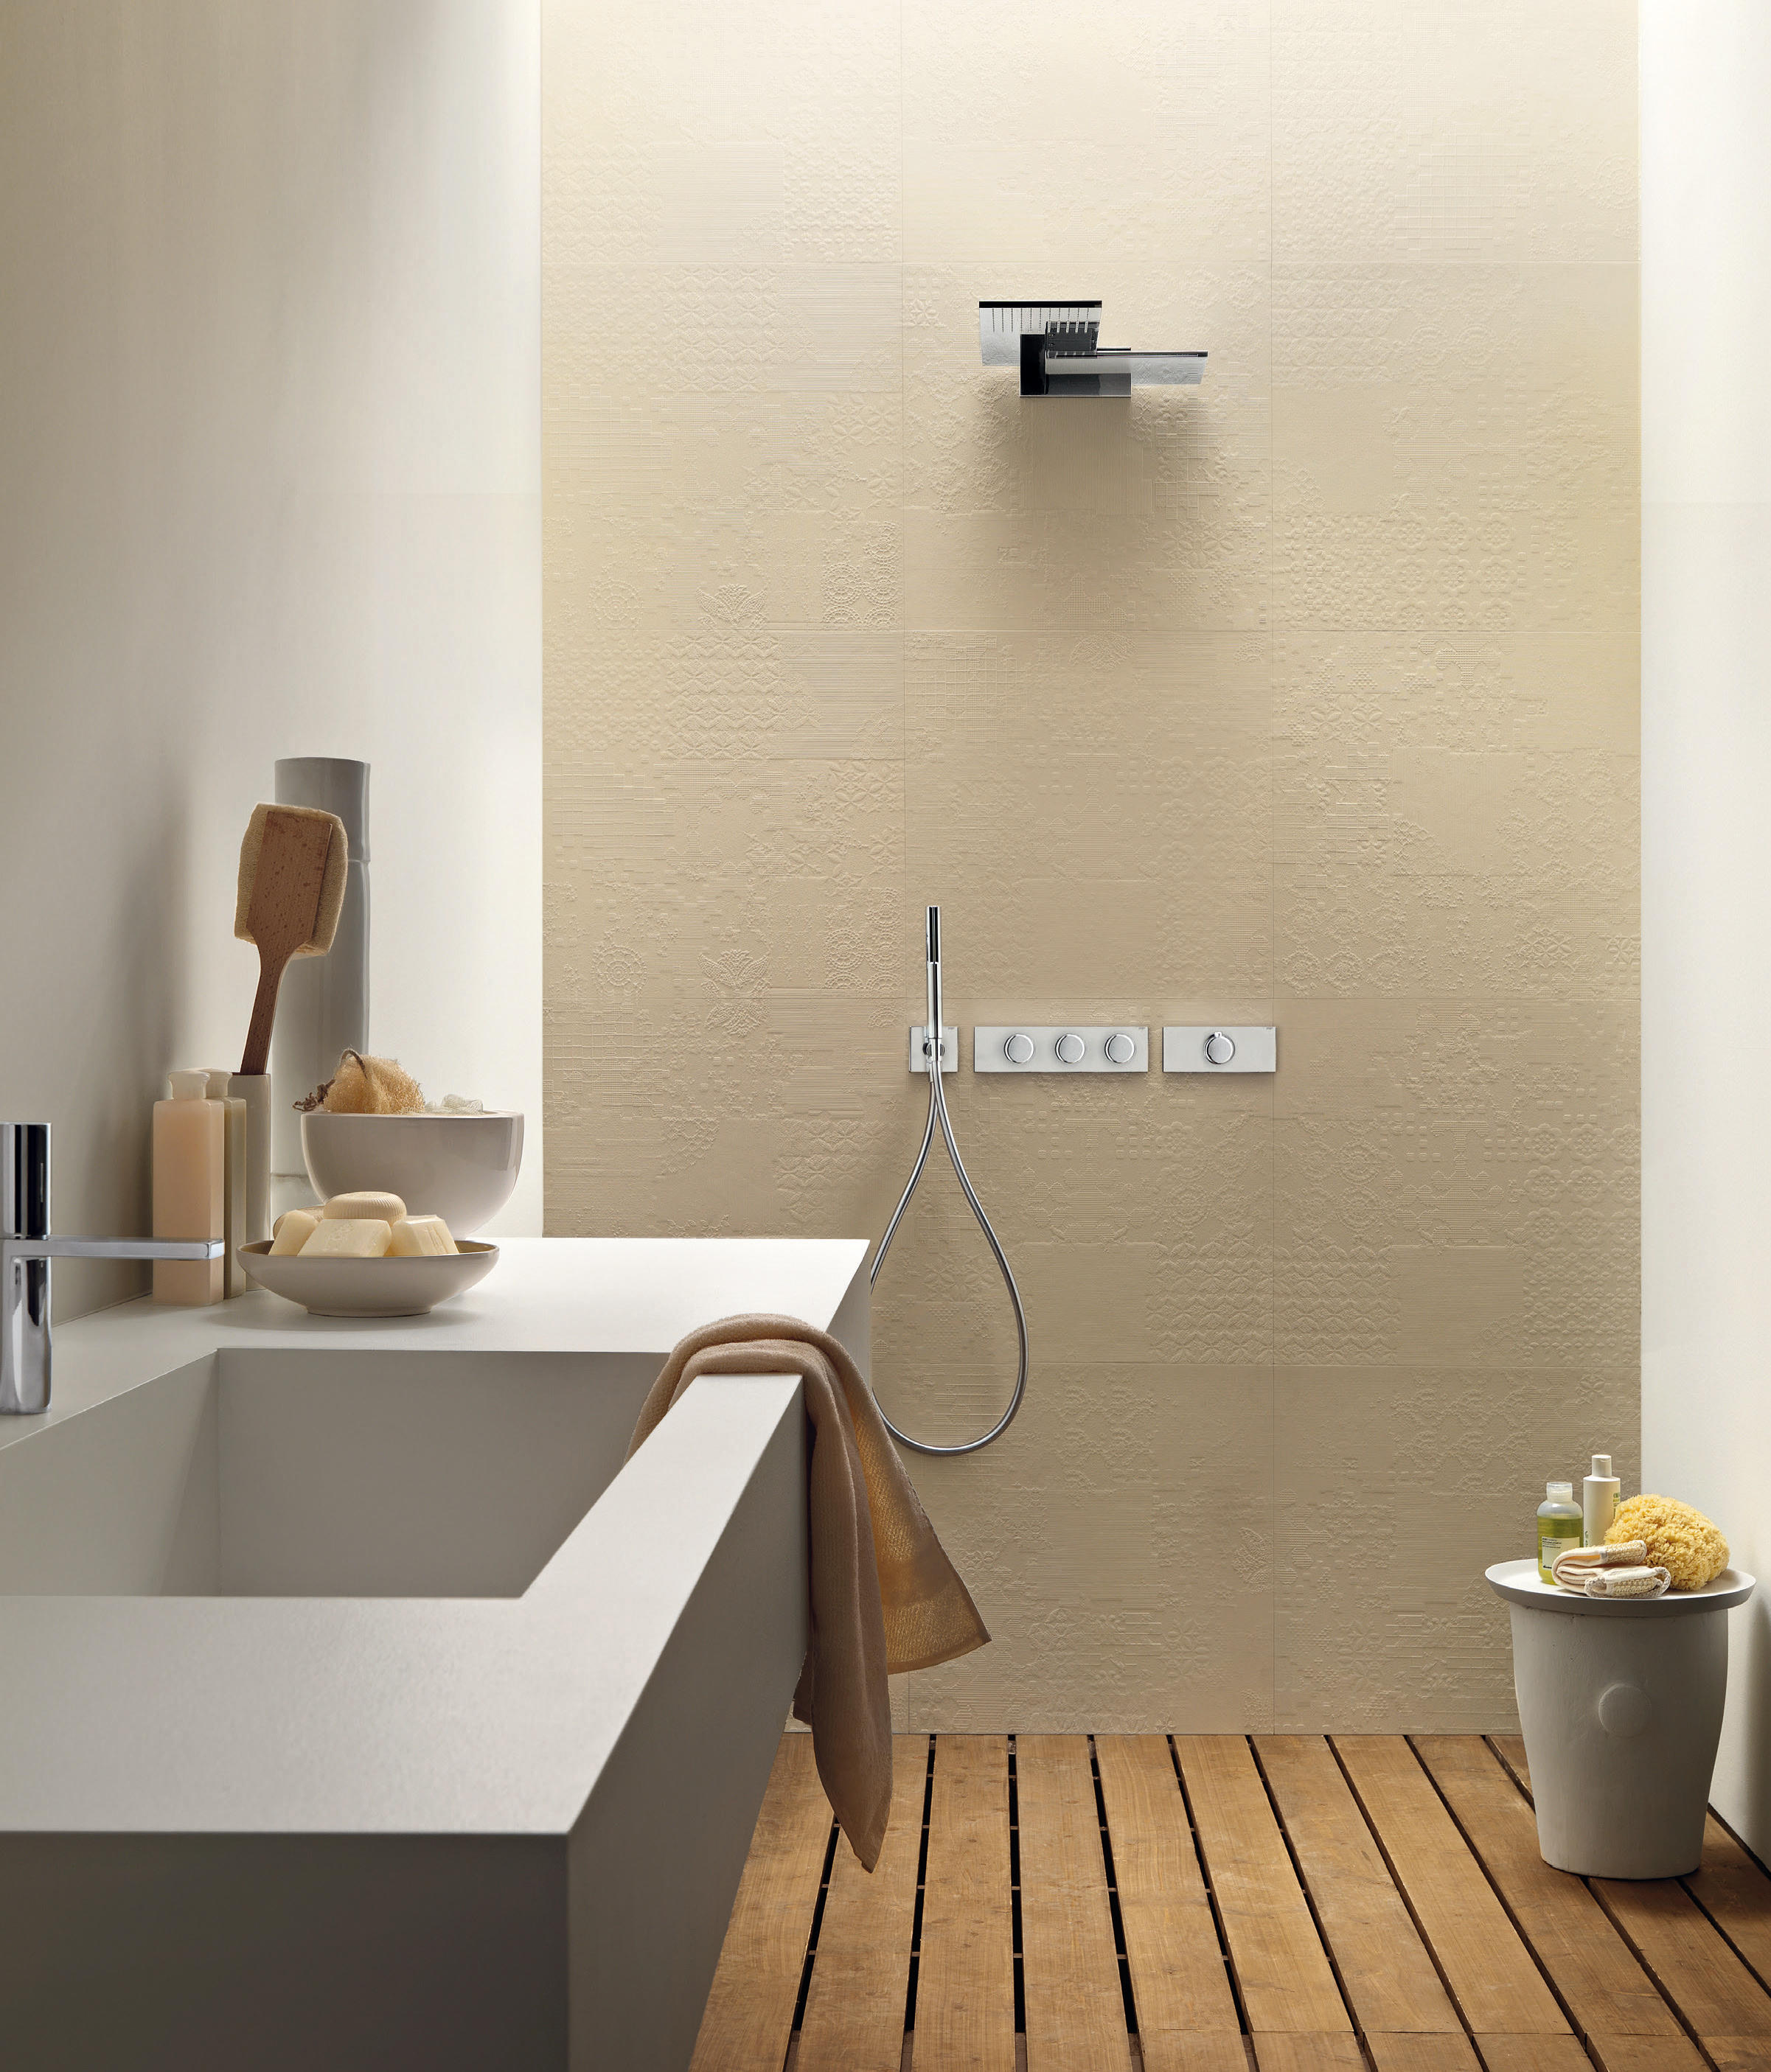 faucet ceiling fontane mounted bath residential for bianche faucets pros product fantini